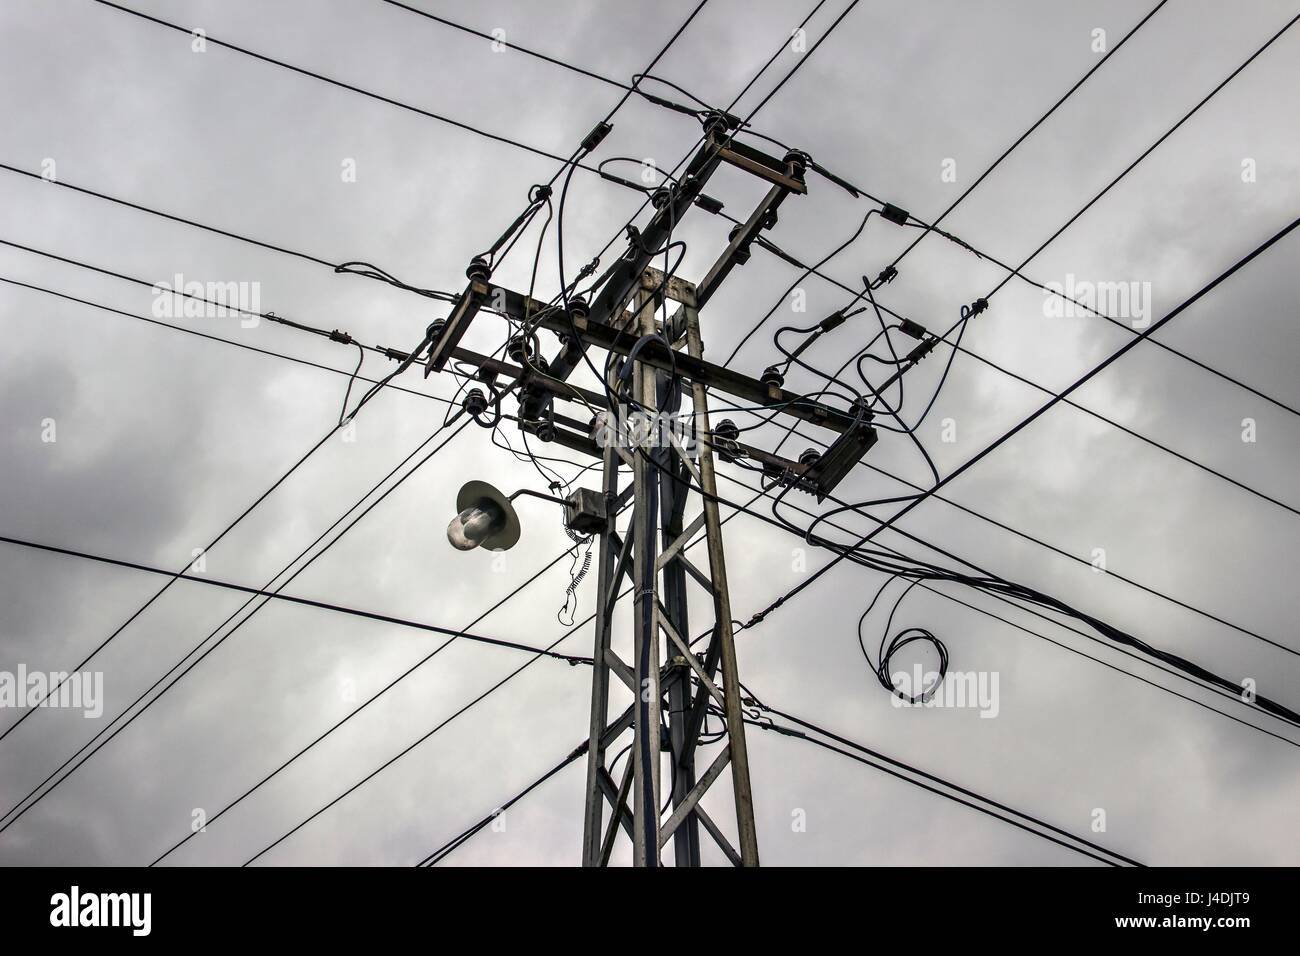 Utility power pole supporting wires Stock Photo: 140441737 - Alamy